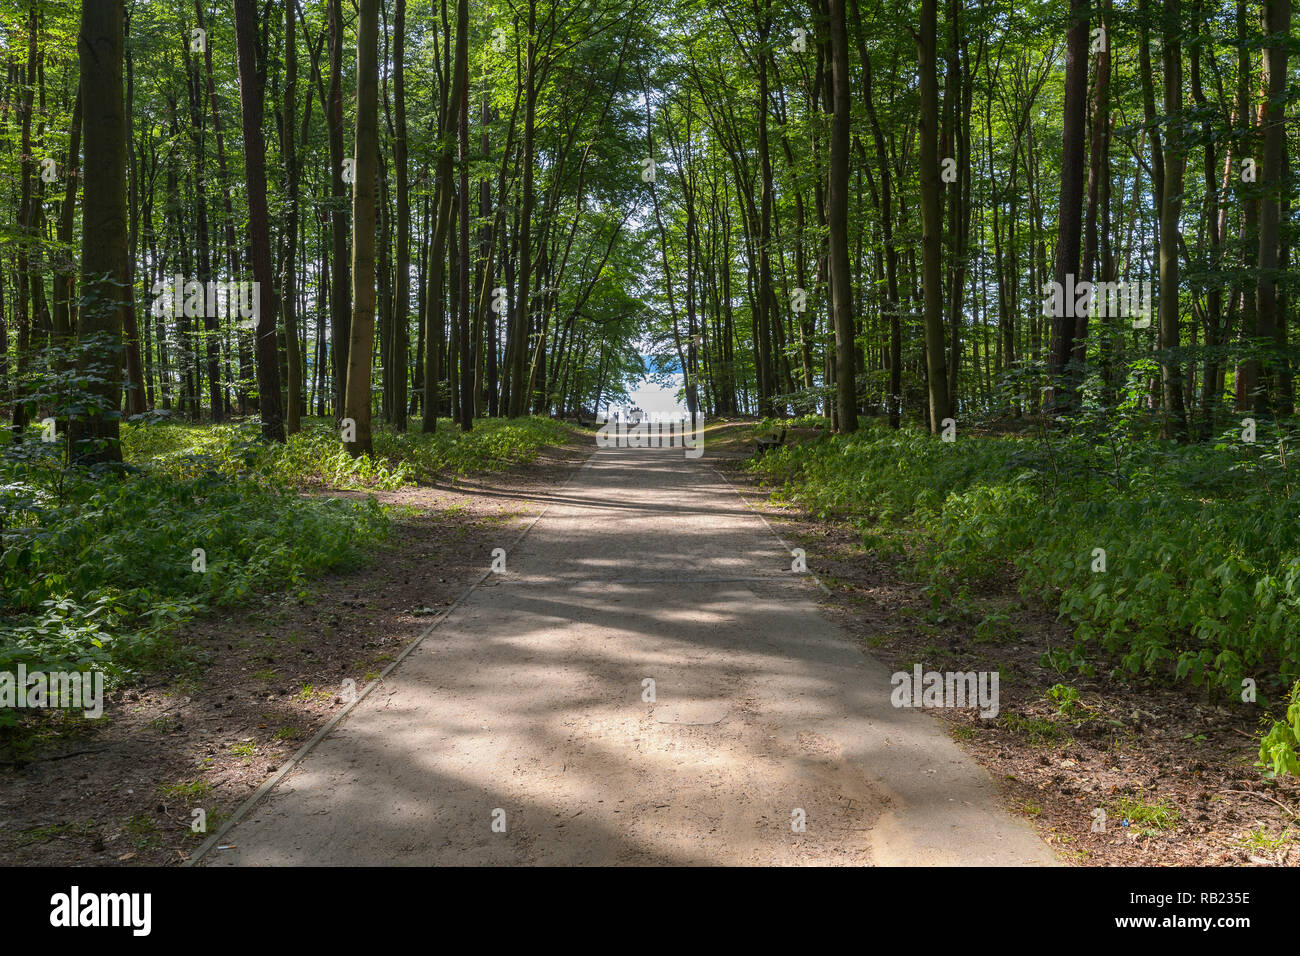 Road through forest to the lake, Lake Großer Stechlinsee, Neuglobsow, Rheinsberg, Ruppiner Land, Brandenburg, Germany - Stock Image